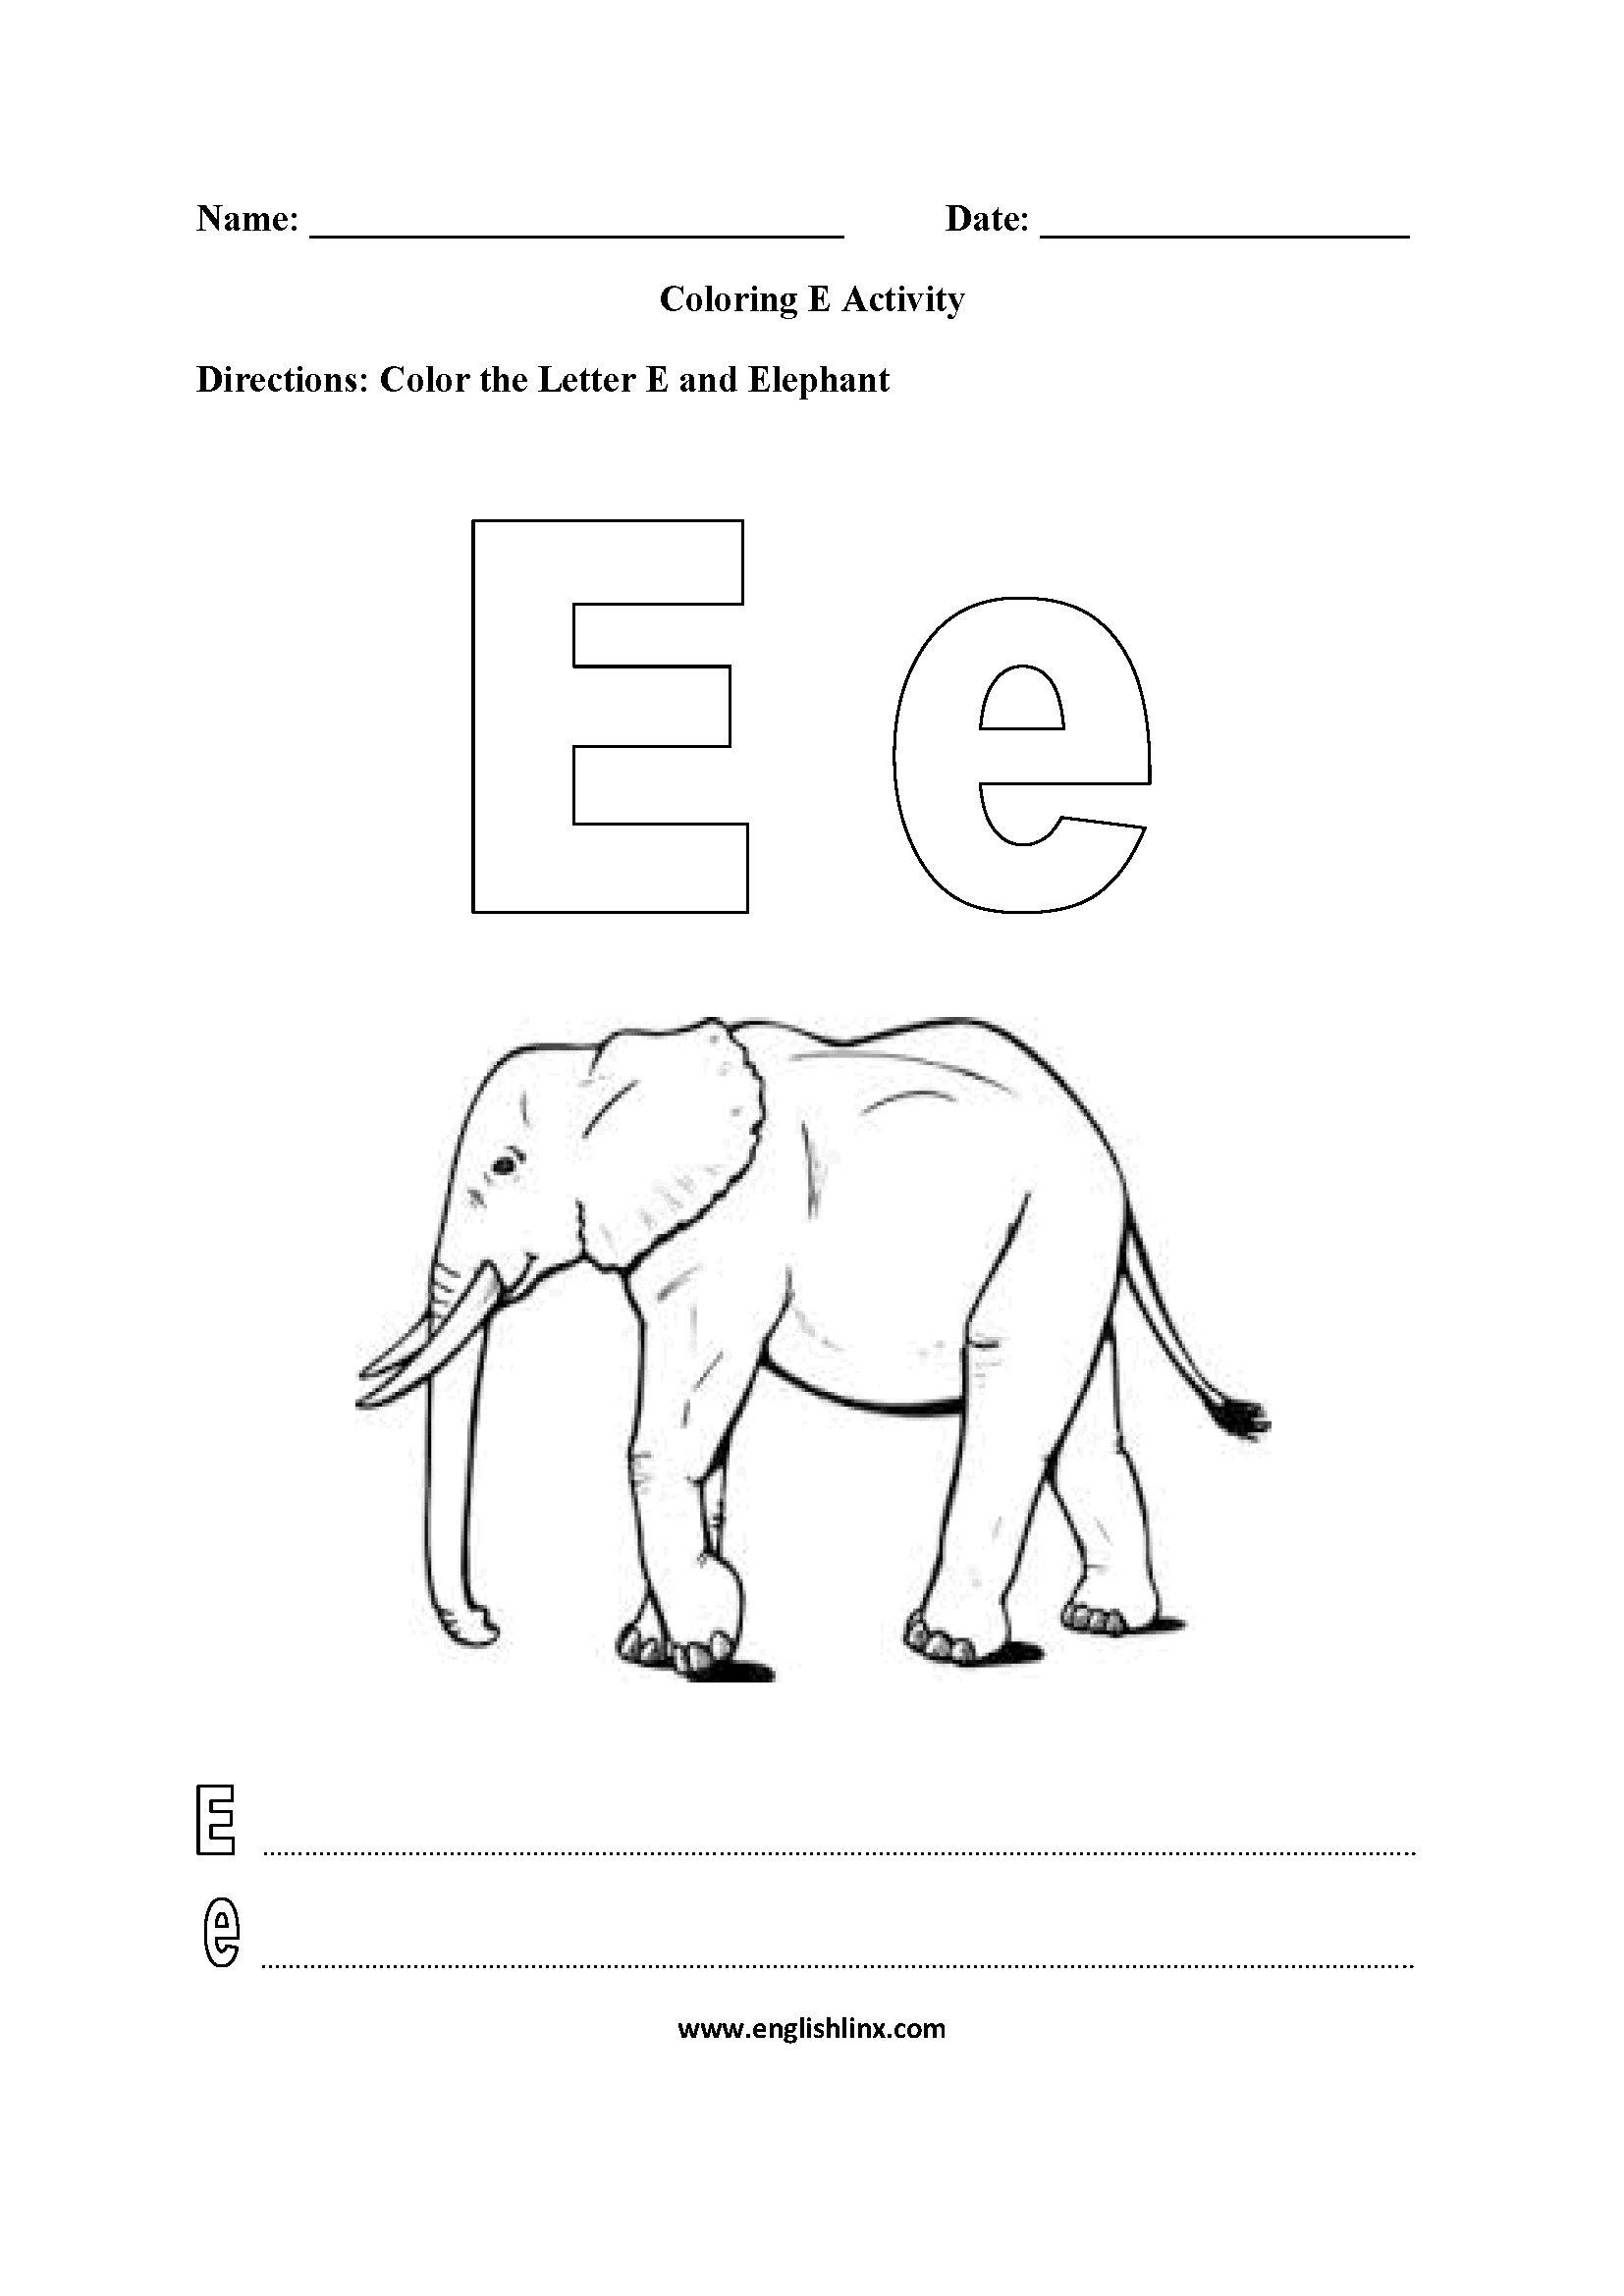 Worksheet Letter C Coloring Pages